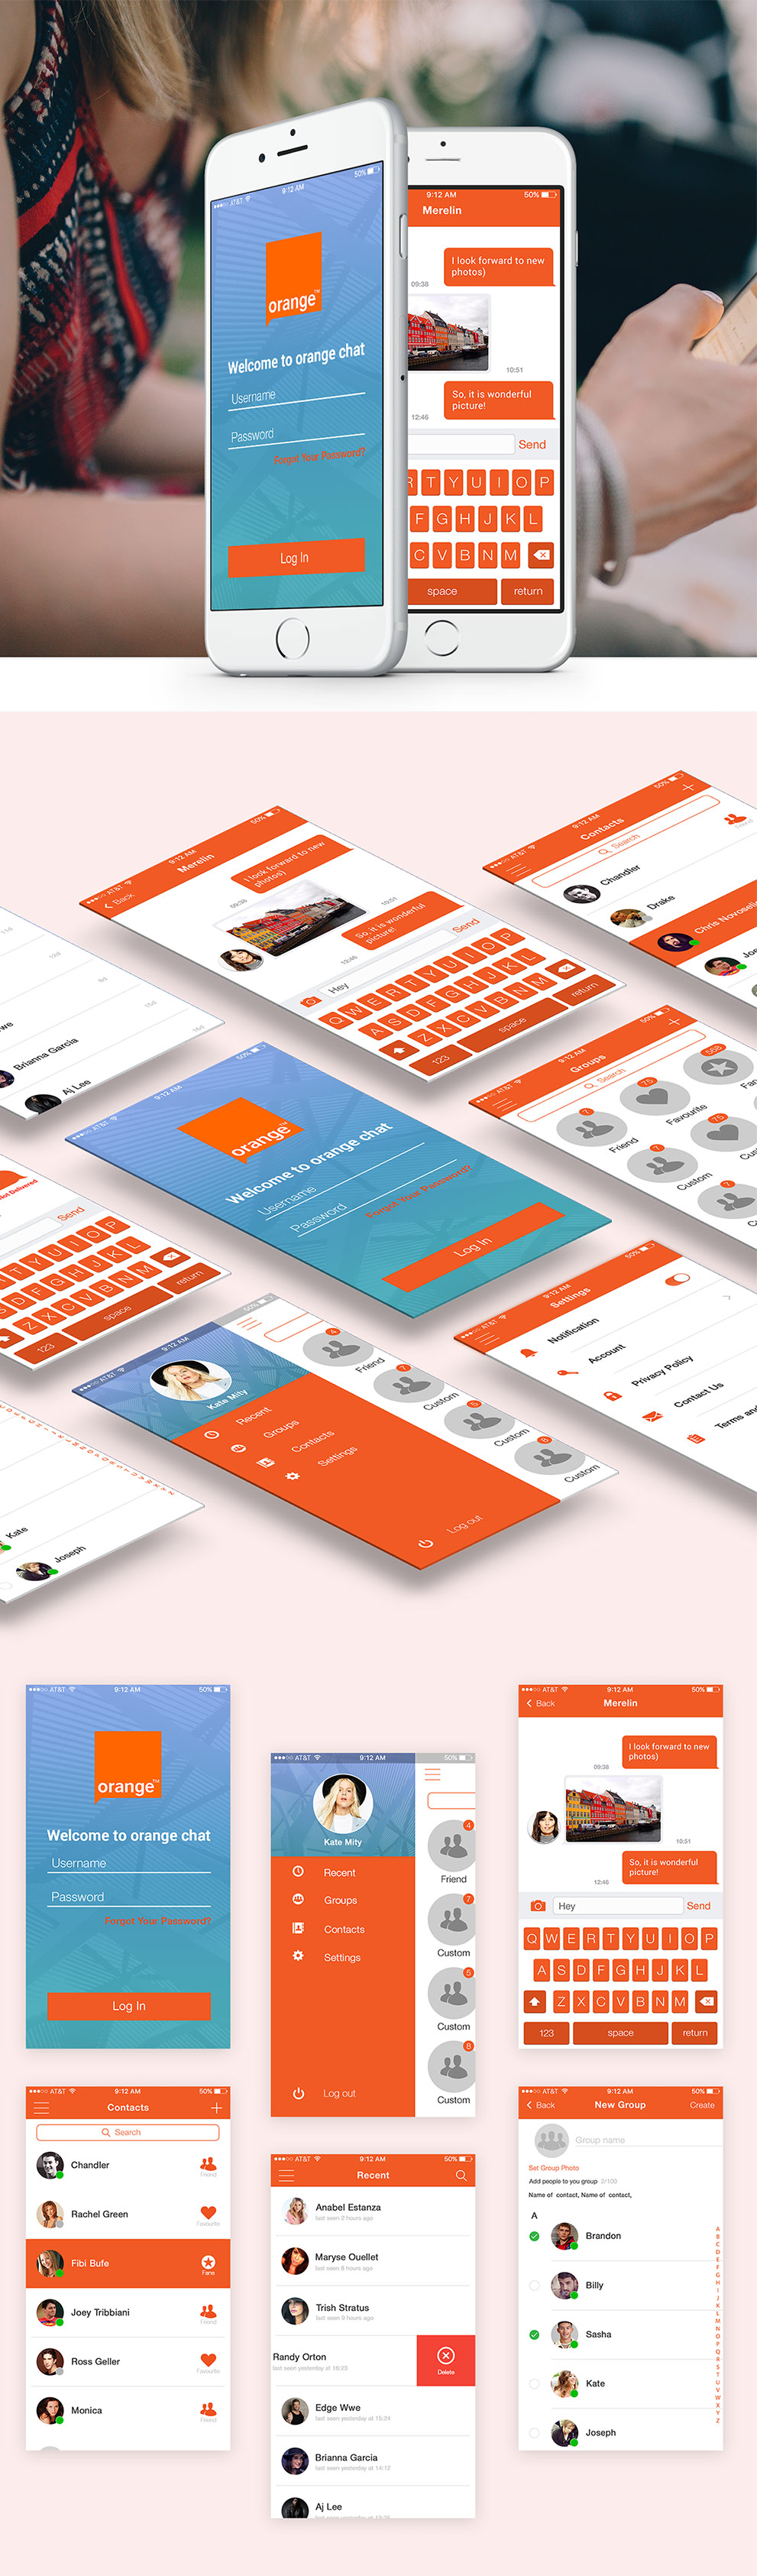 Mobile Chat Application UI Design Free PSD Set Download - Download PSD